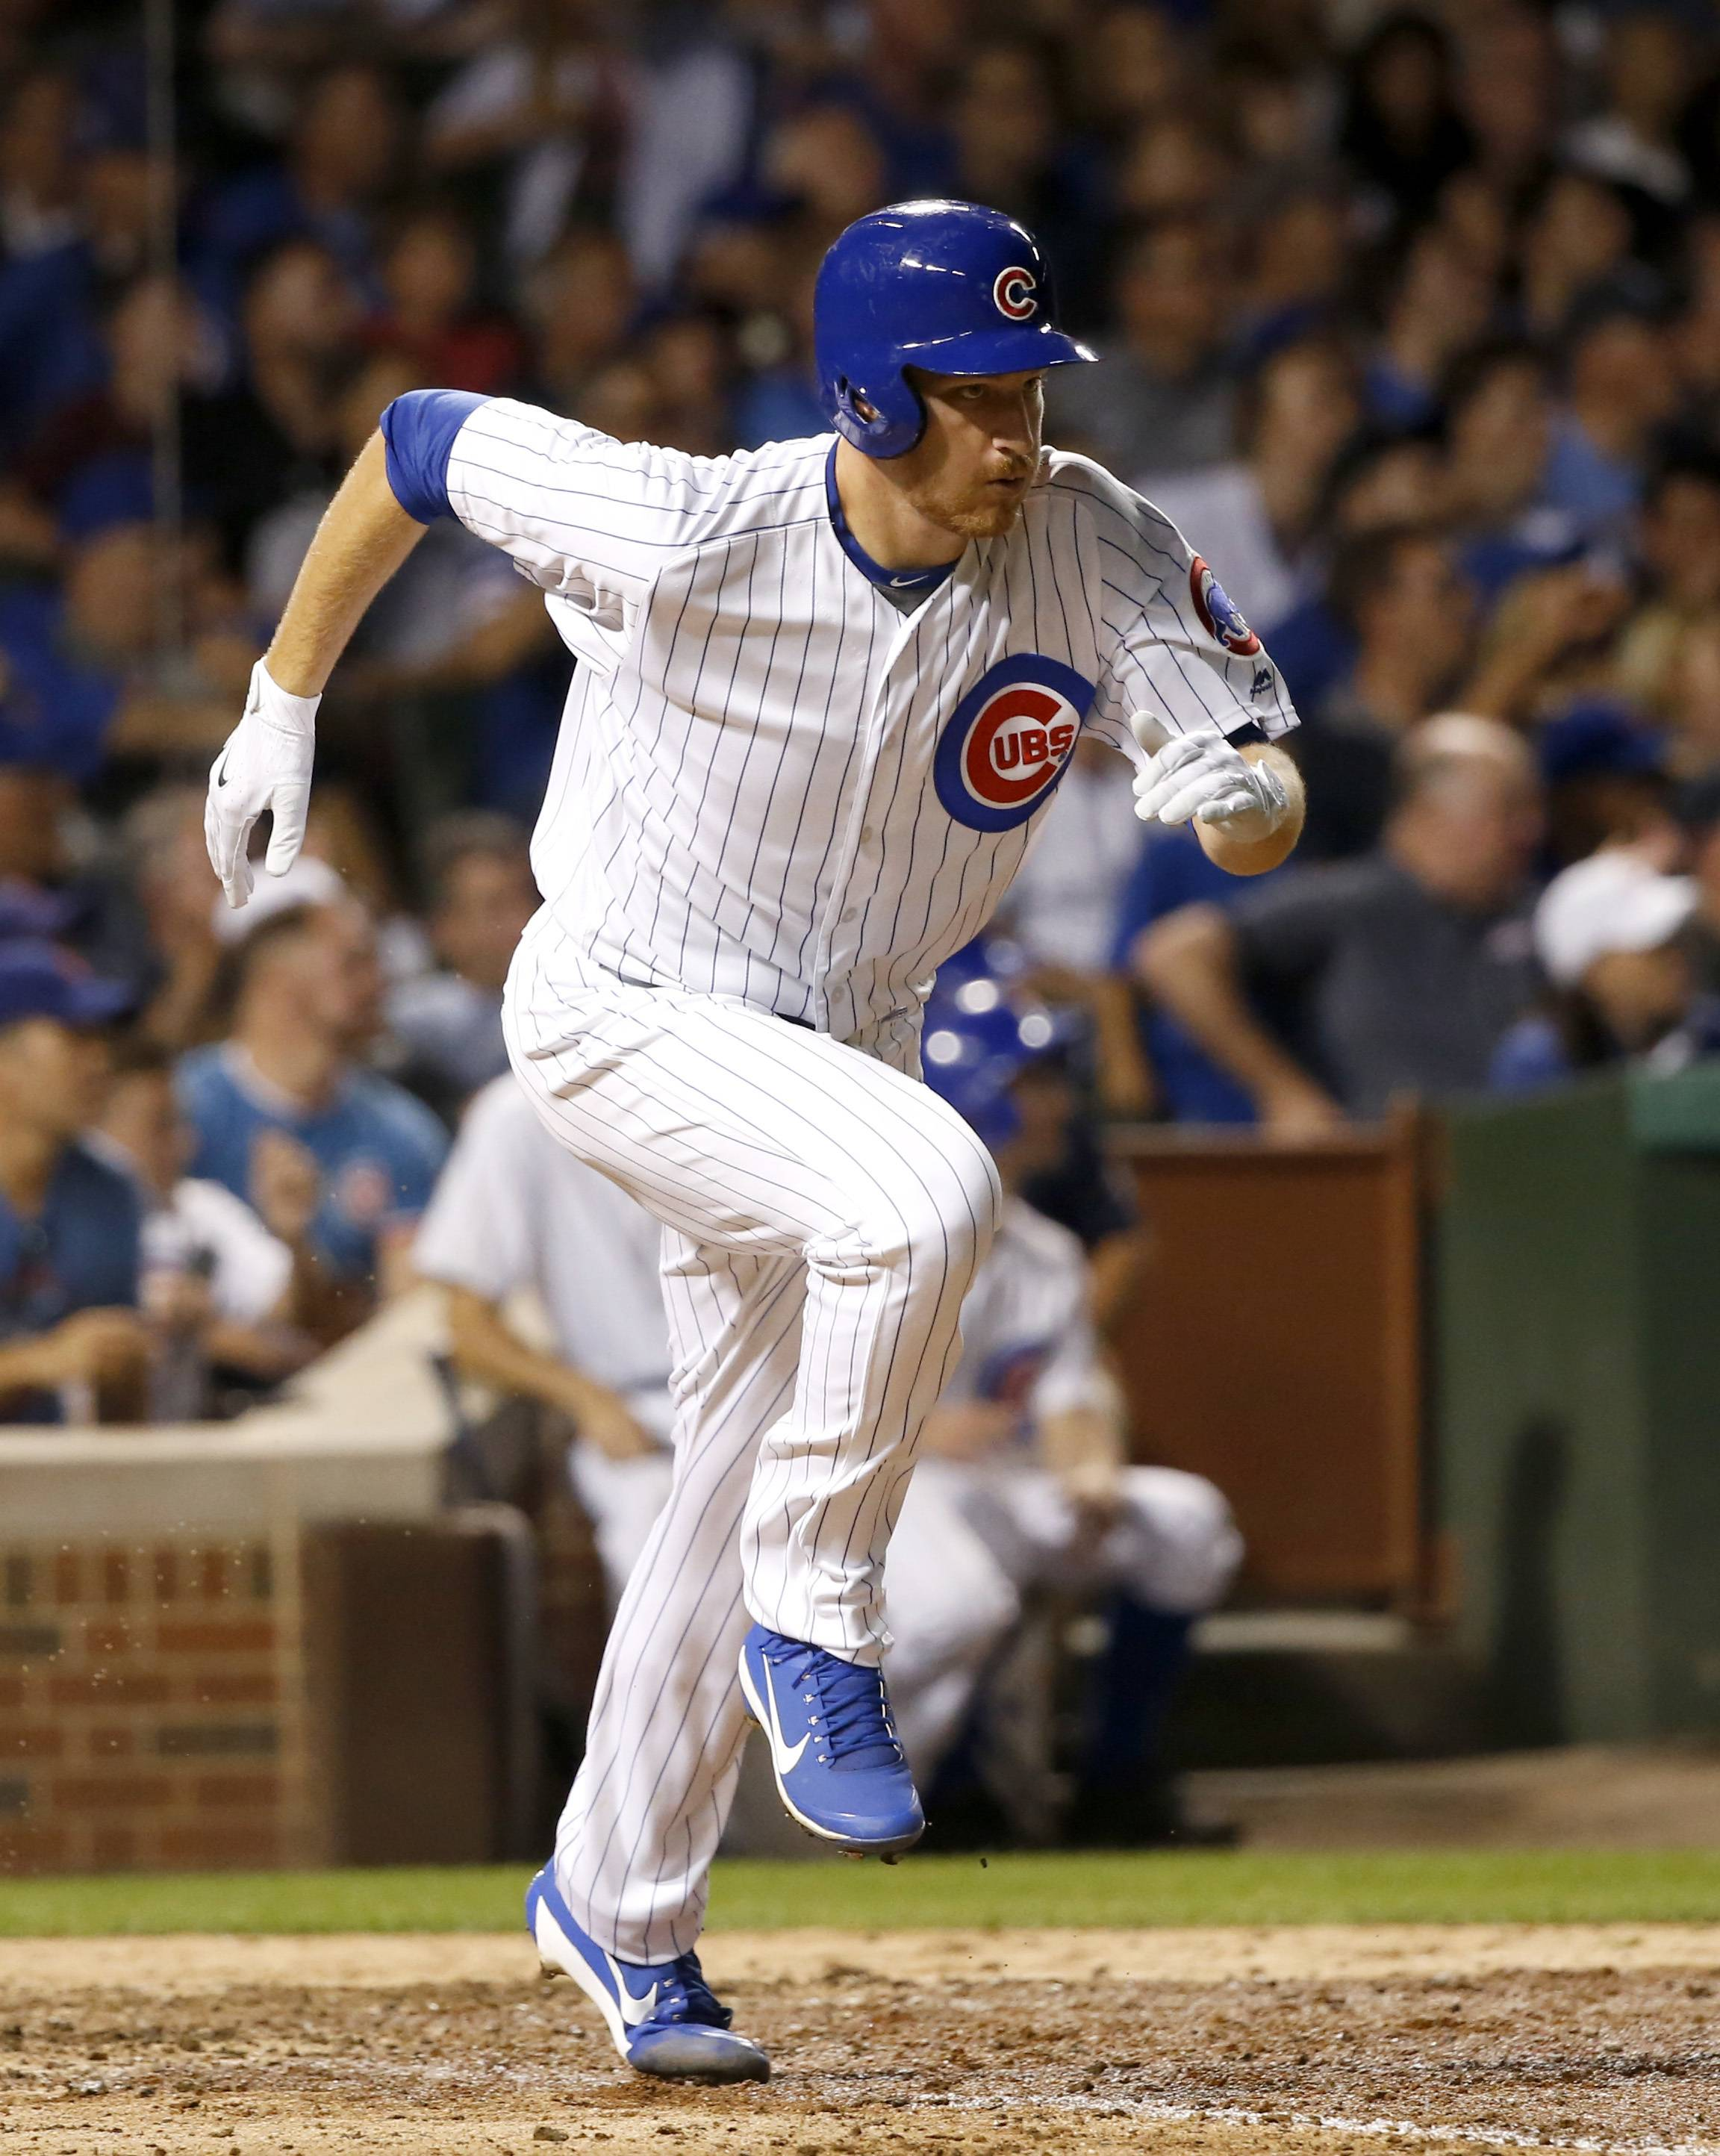 Chicago Cubs' Mike Montgomery heads to first after hitting a two-run double off Cincinnati Reds' Drew Storen during the seventh inning of a baseball game Monday, Aug. 14, 2017, in Chicago. Kyle Schwarber and Jason Heyward scored on the play.